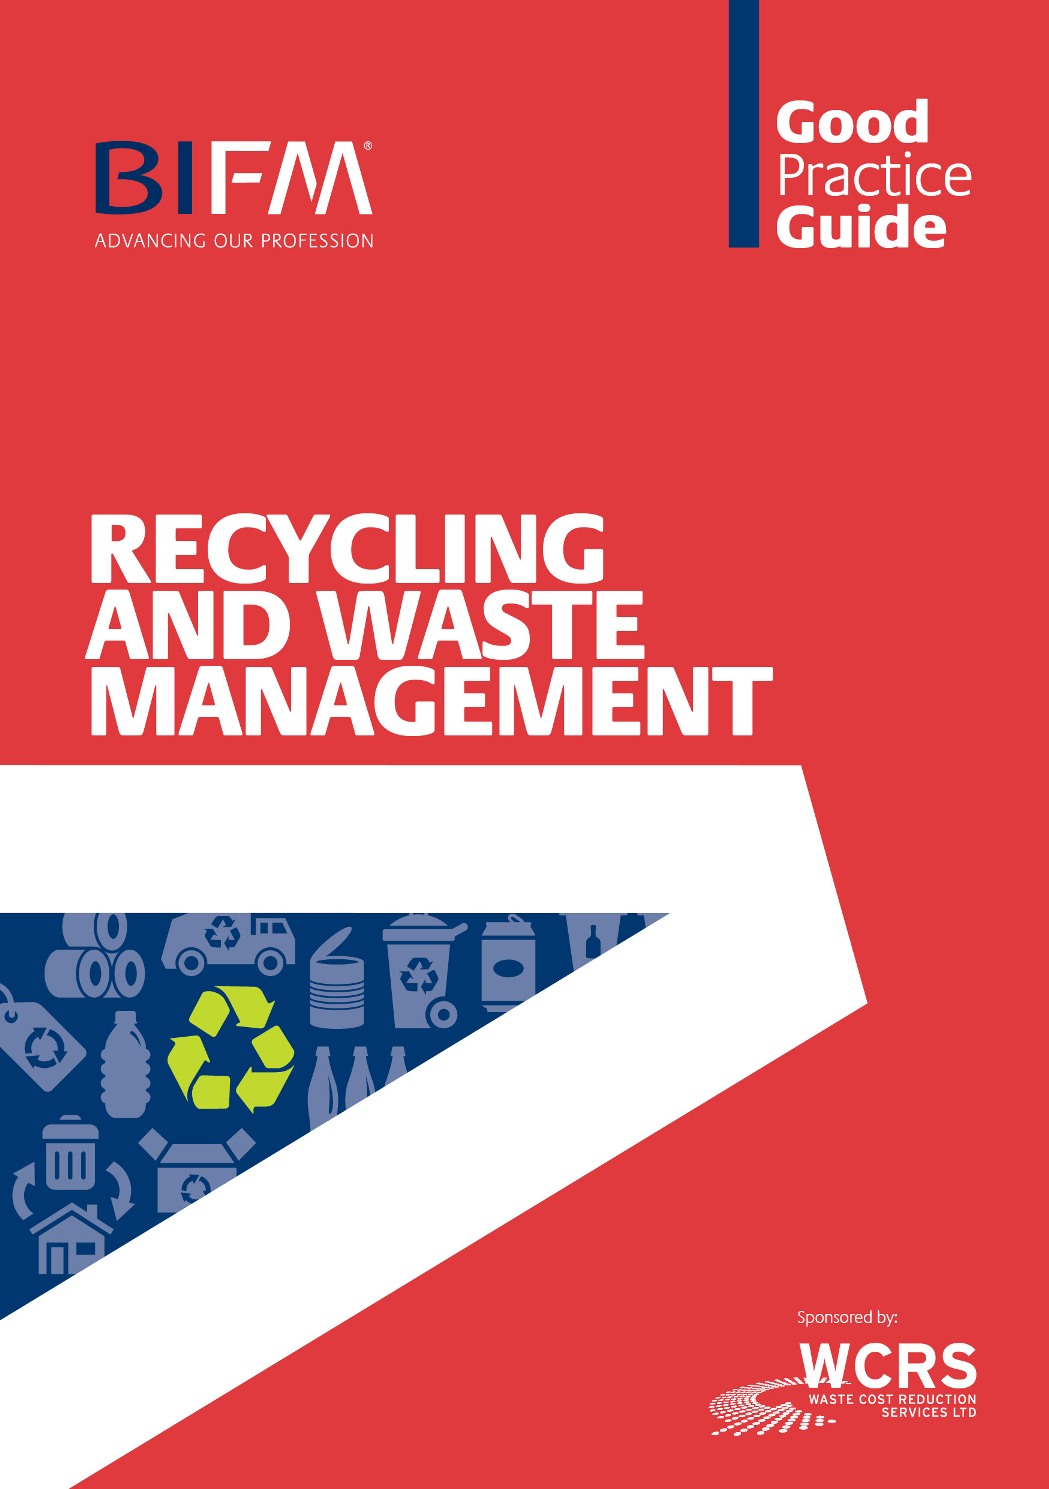 Good Practice Guide to Recycling and Waste Management